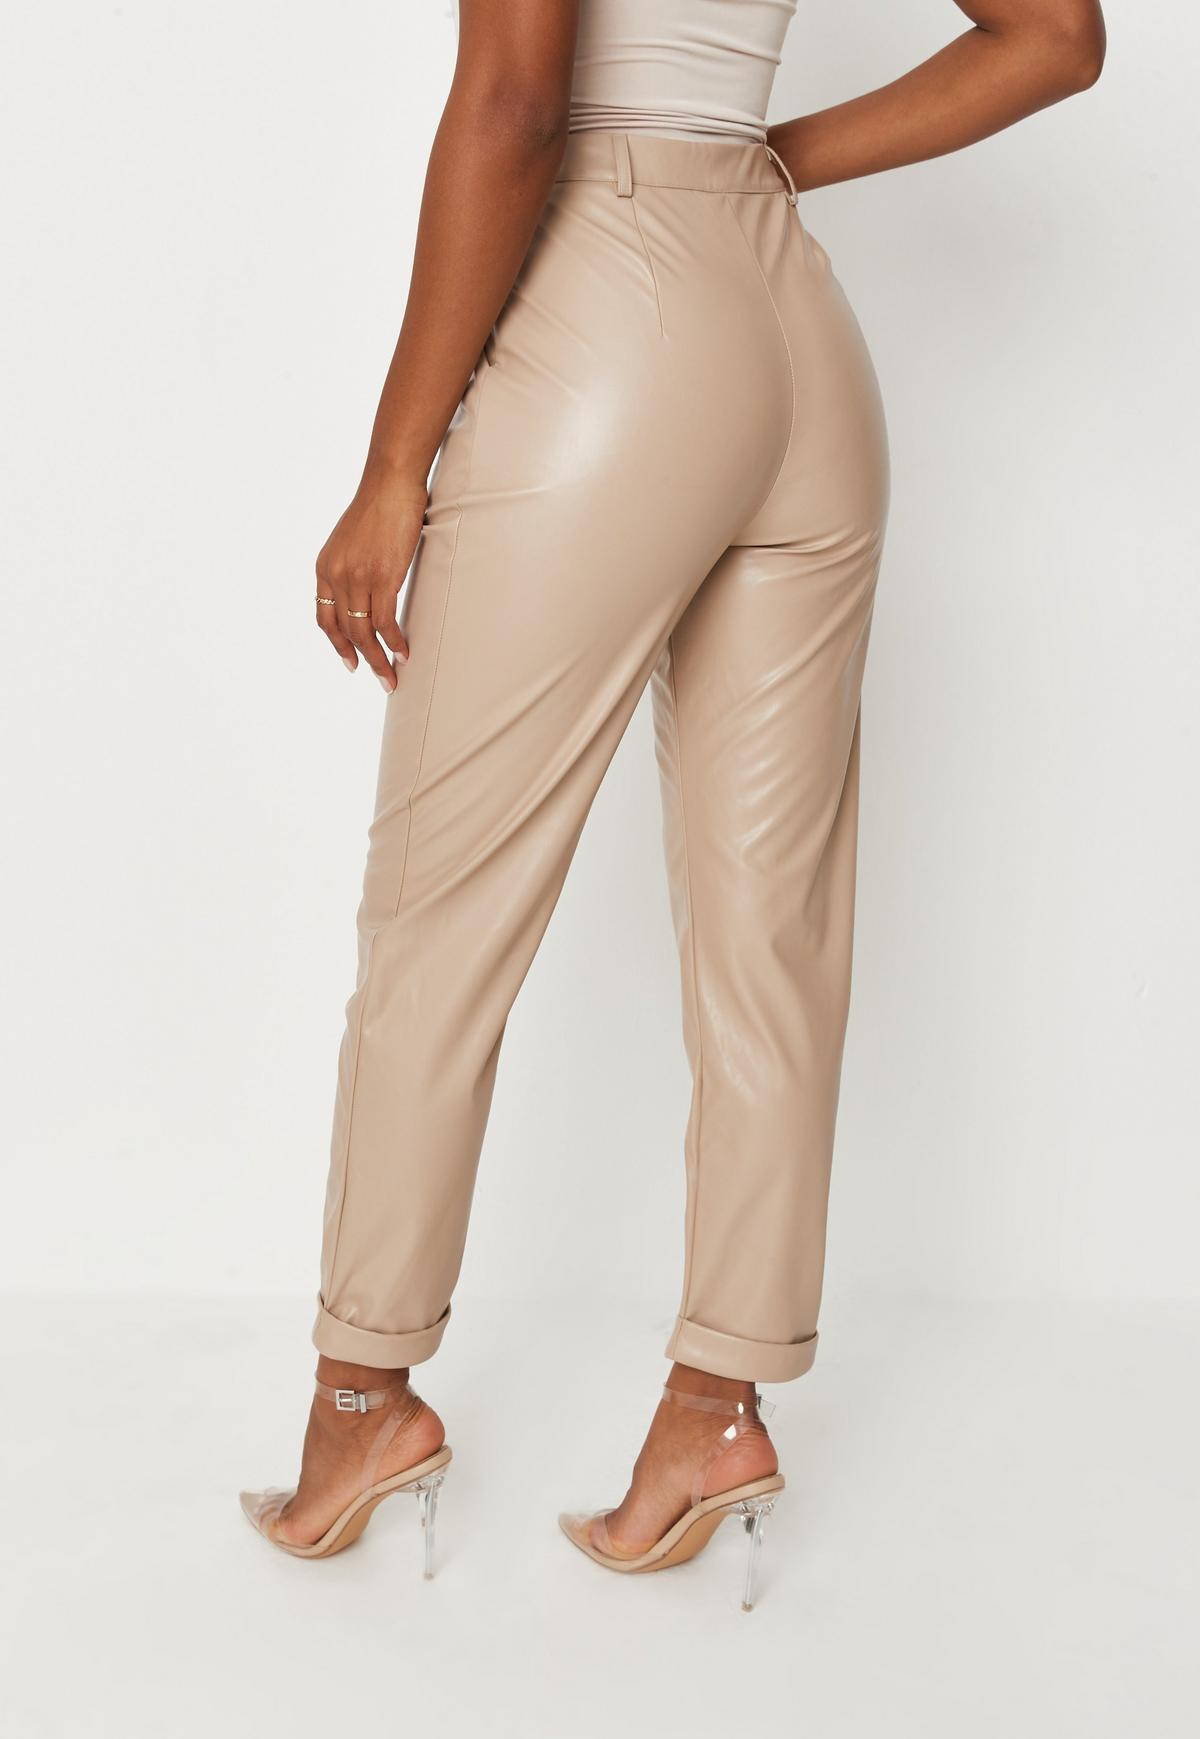 Camel Faux Leather Turn Up Cigarette Pants   Missguided